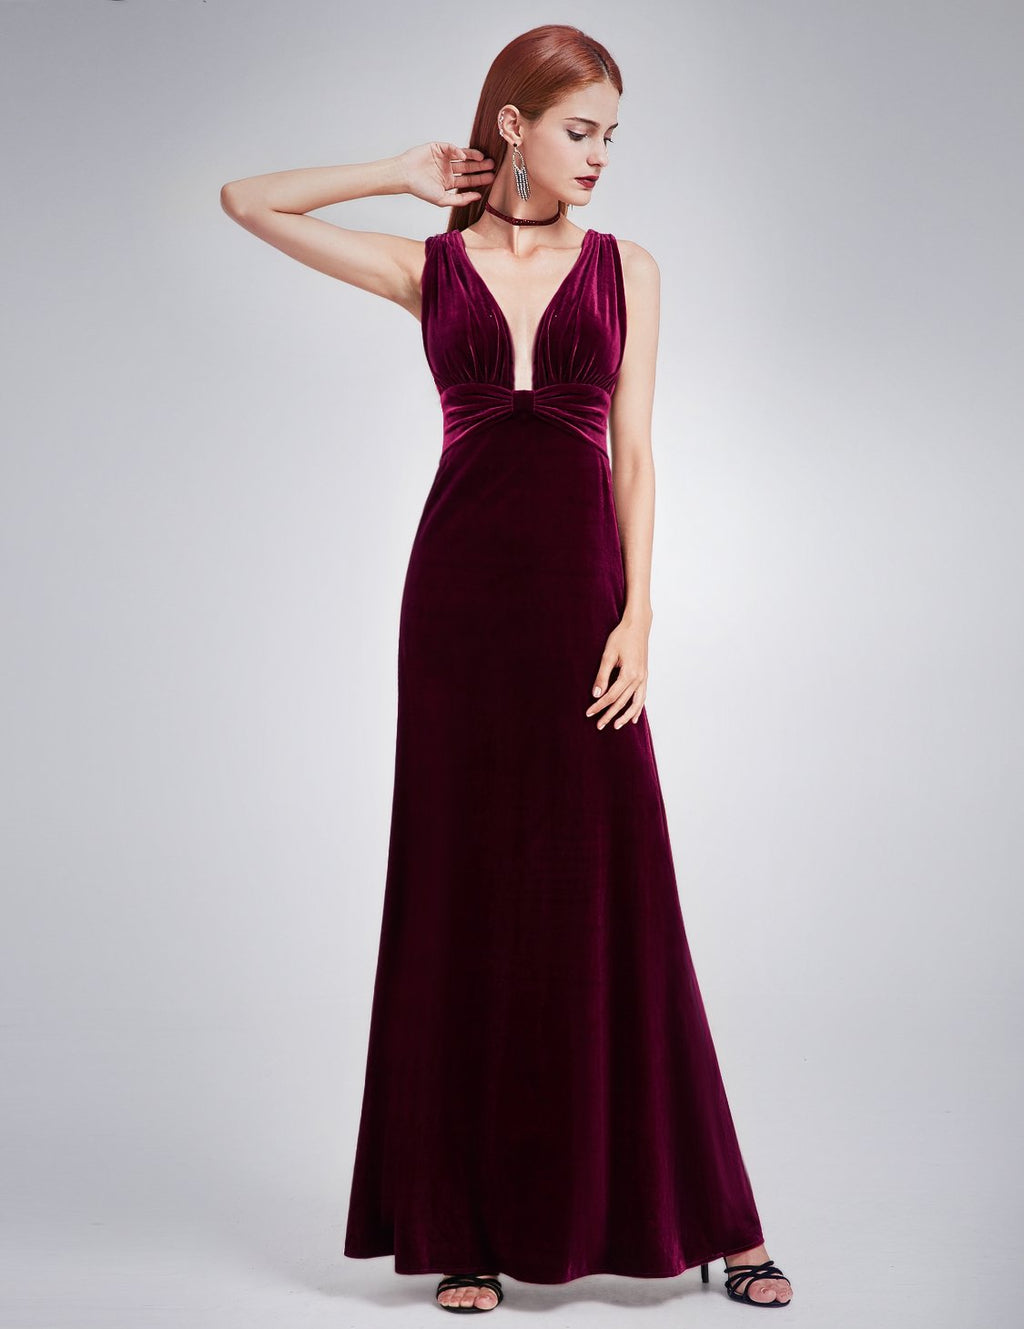 Sexy Neckline Velvet Long Dress Burgundy